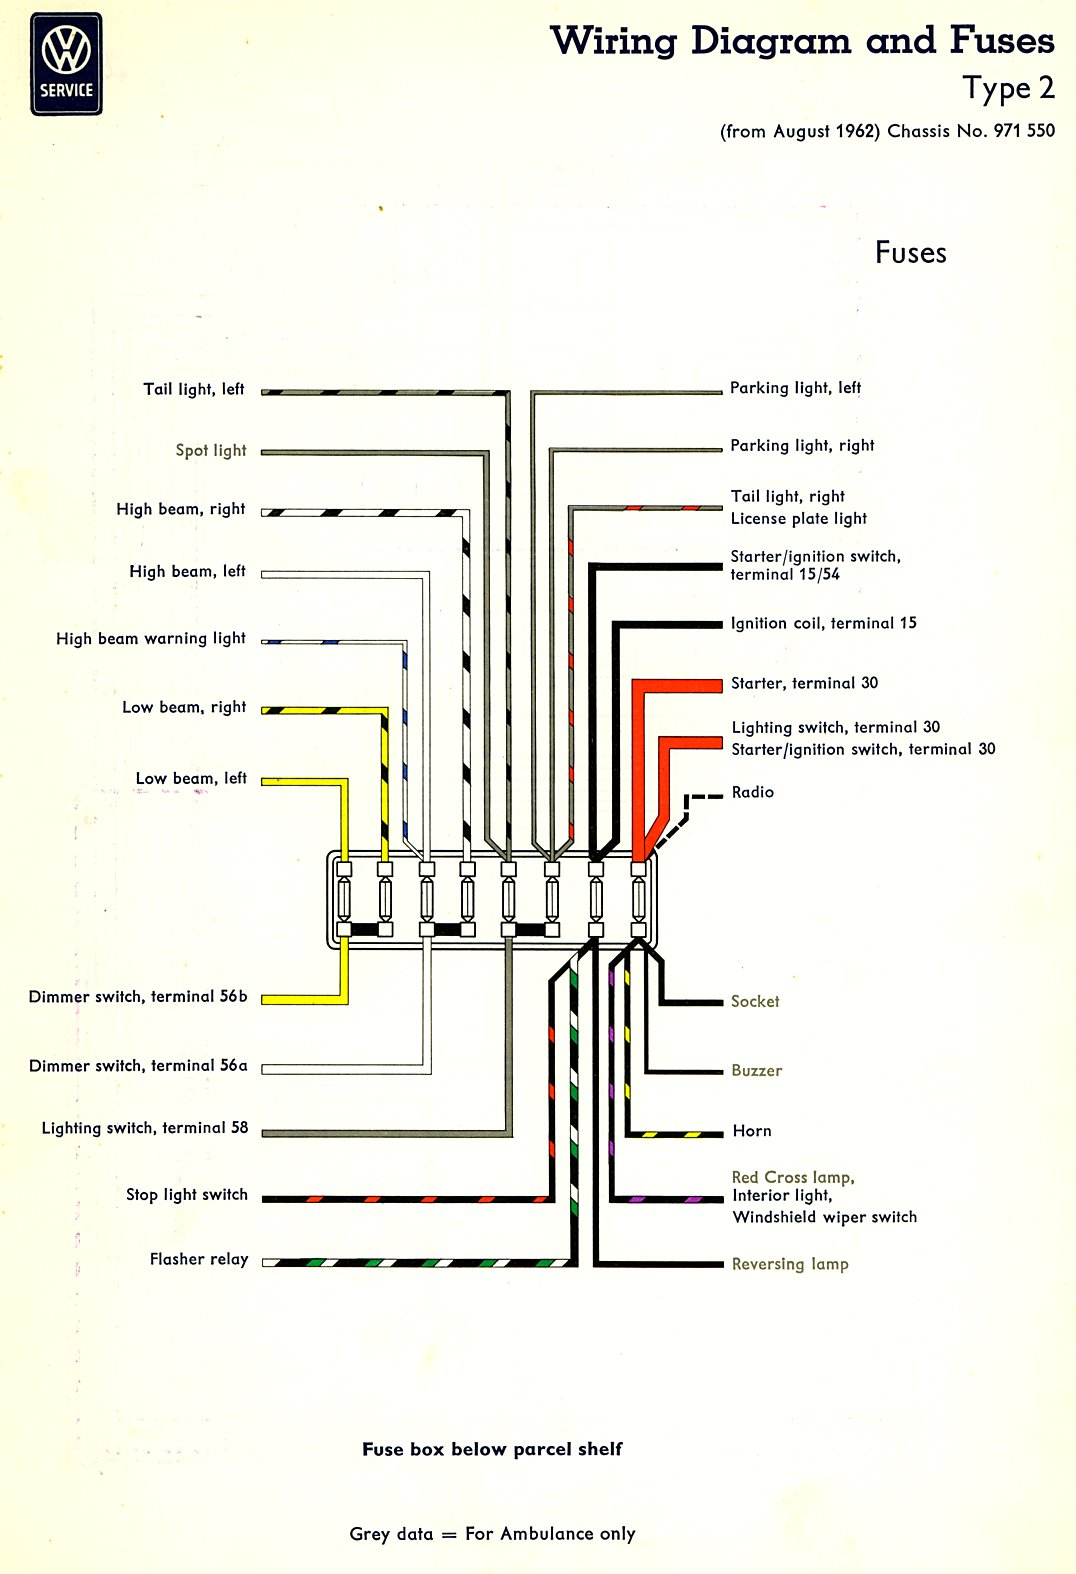 bus_63_fuses thesamba com type 2 wiring diagrams 1978 vw bus fuse box diagram at mifinder.co